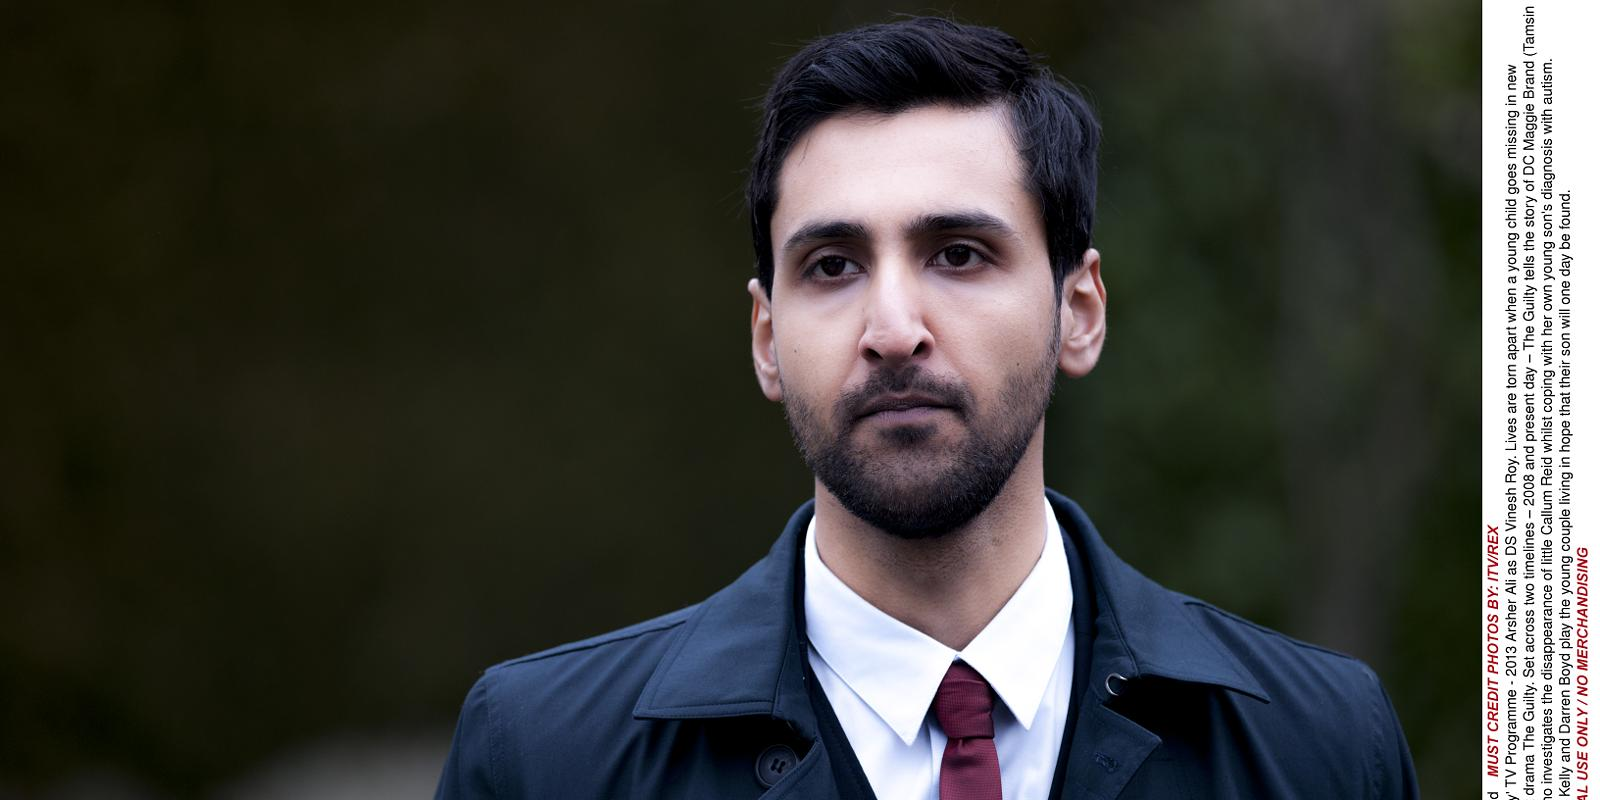 arsher ali wifearsher ali actor, arsher ali wife, arsher ali imdb, arsher ali twitter, arsher ali biography, arsher ali doctor who, arsher ali and roxy shahidi, arsher ali four lions, arsher ali the missing, arsher ali line of duty, arsher ali parents, arsher ali ethnicity, arsher ali agent, arsher ali wedding, arsher ali instagram, arsher ali height, arsher ali silent witness, arsher ali shirtless, arsher ali school, arsher ali dr who